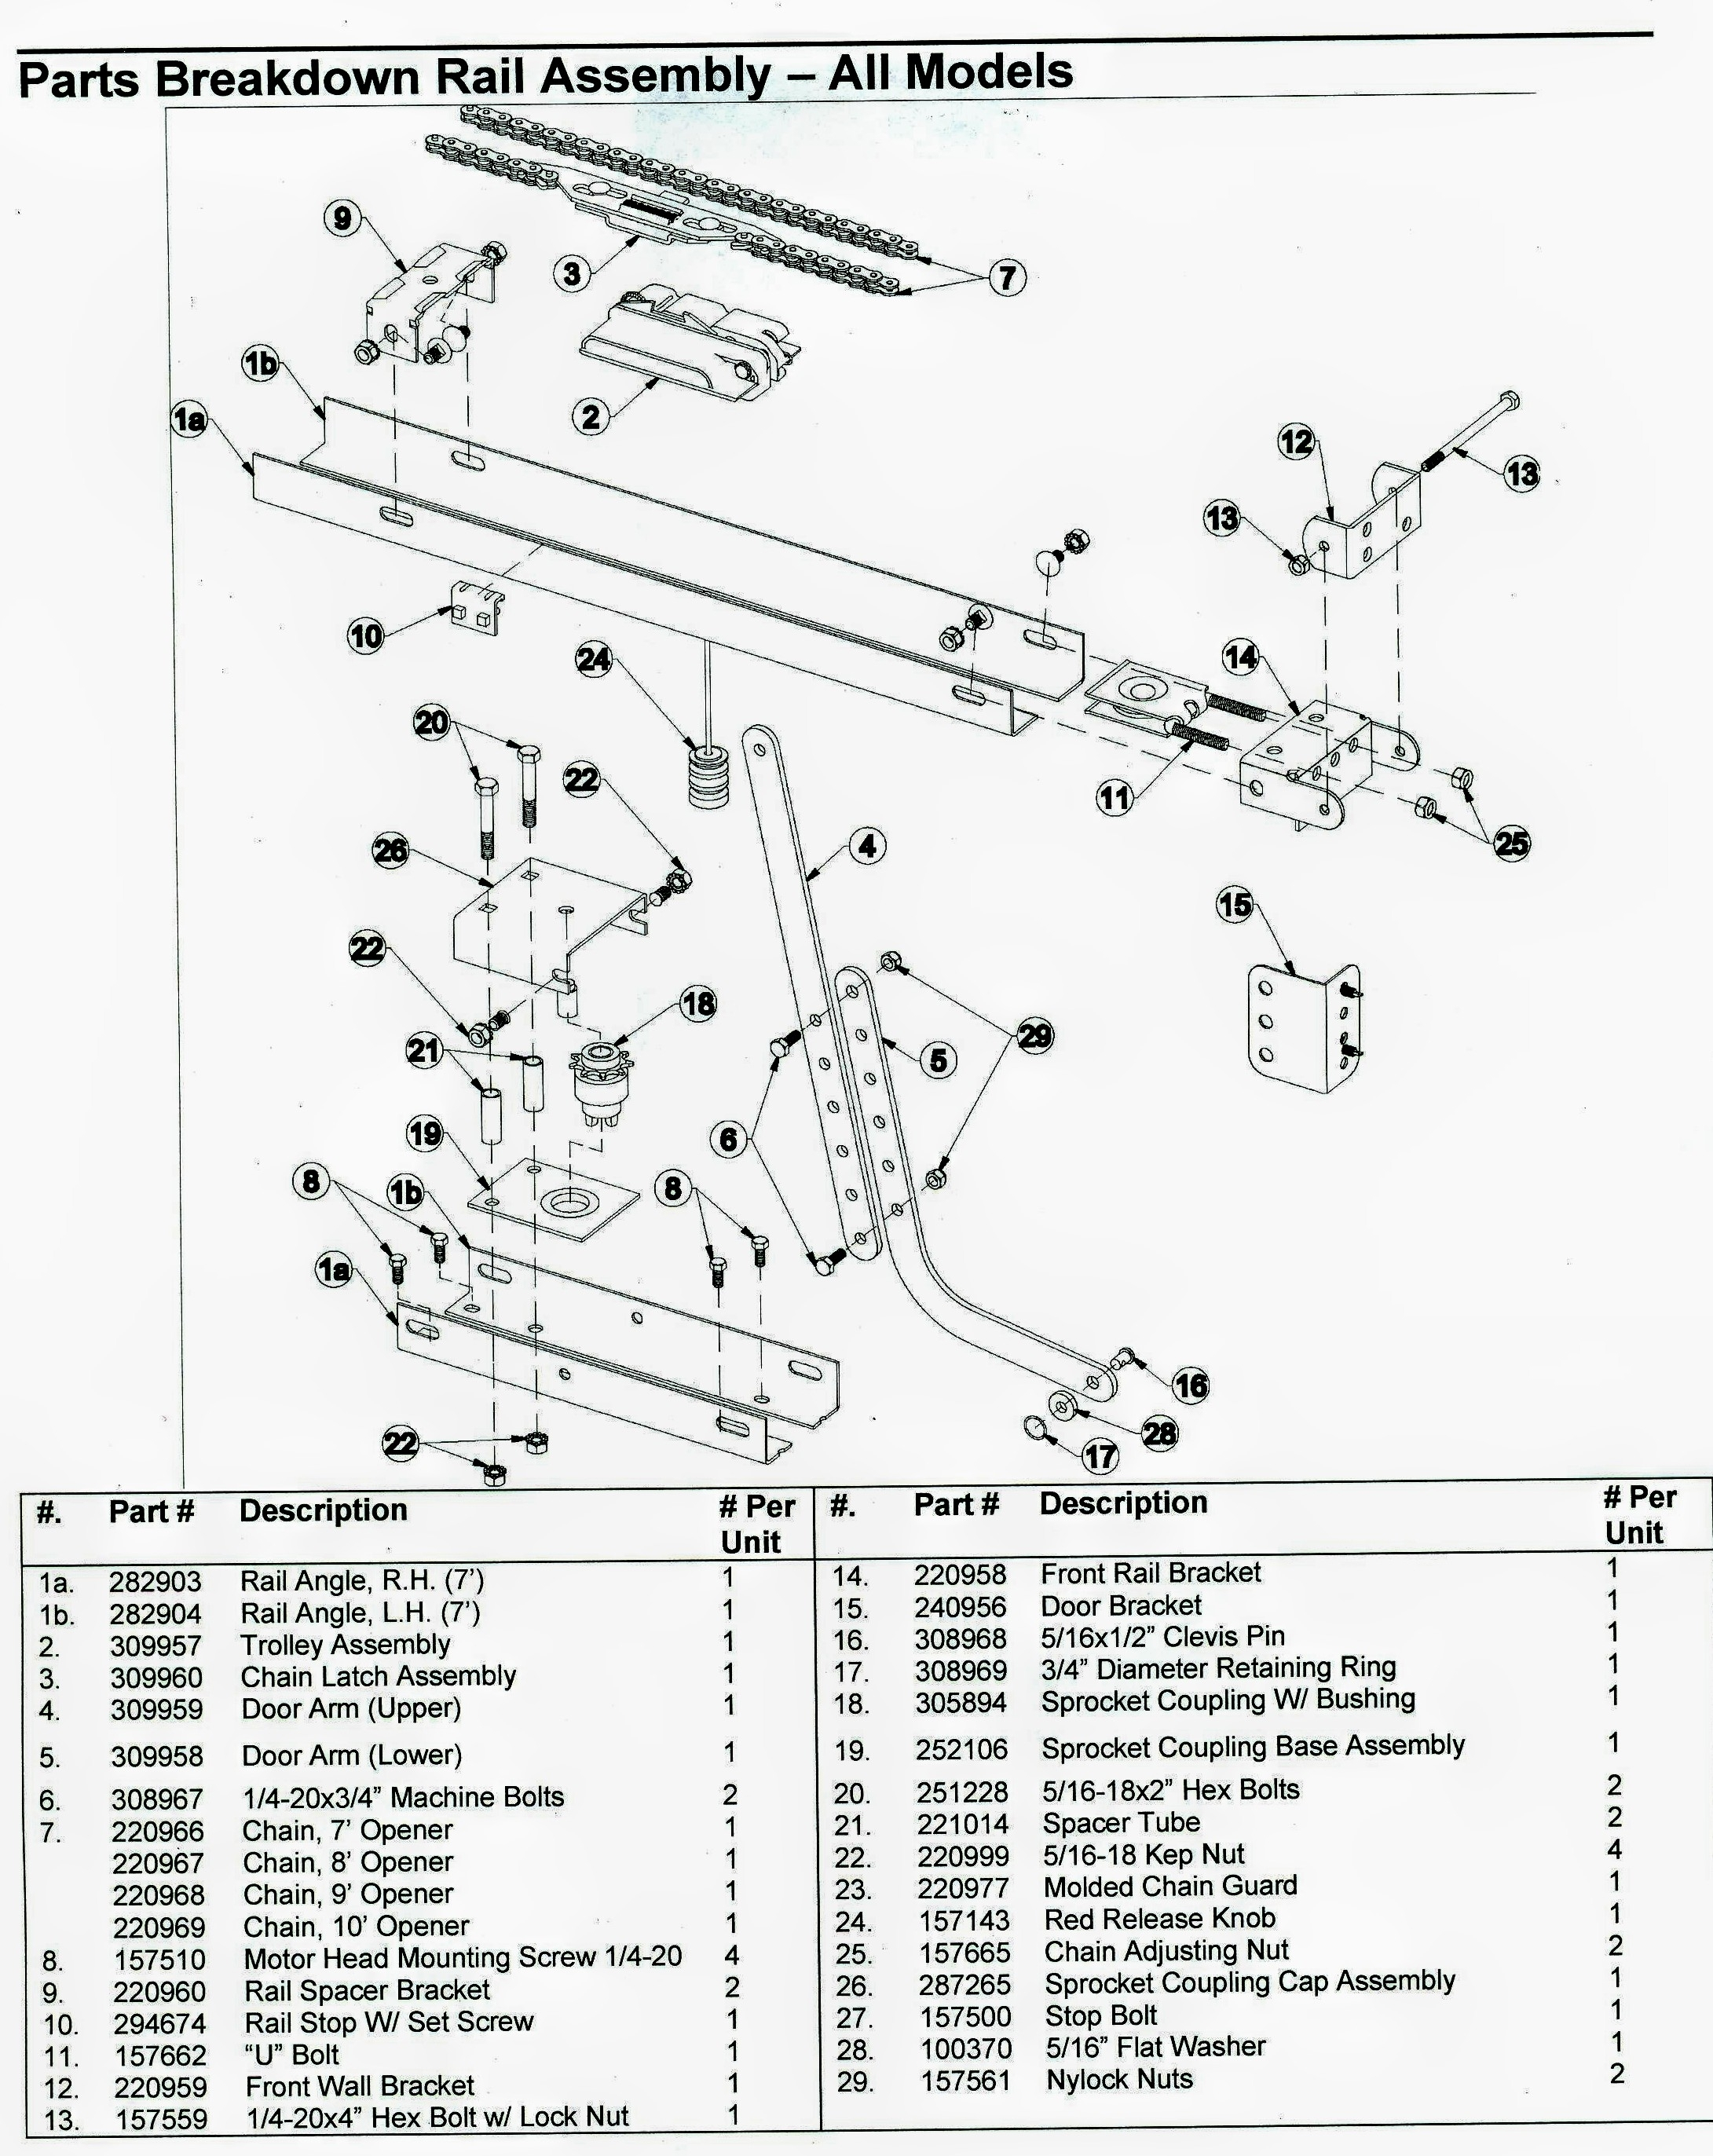 wiring diagram for garage door opener to genie garage door opener intended for genie garage door opener parts diagram wiring diagram for garage door opener to genie garage door opener genie garage door wiring diagram at gsmx.co